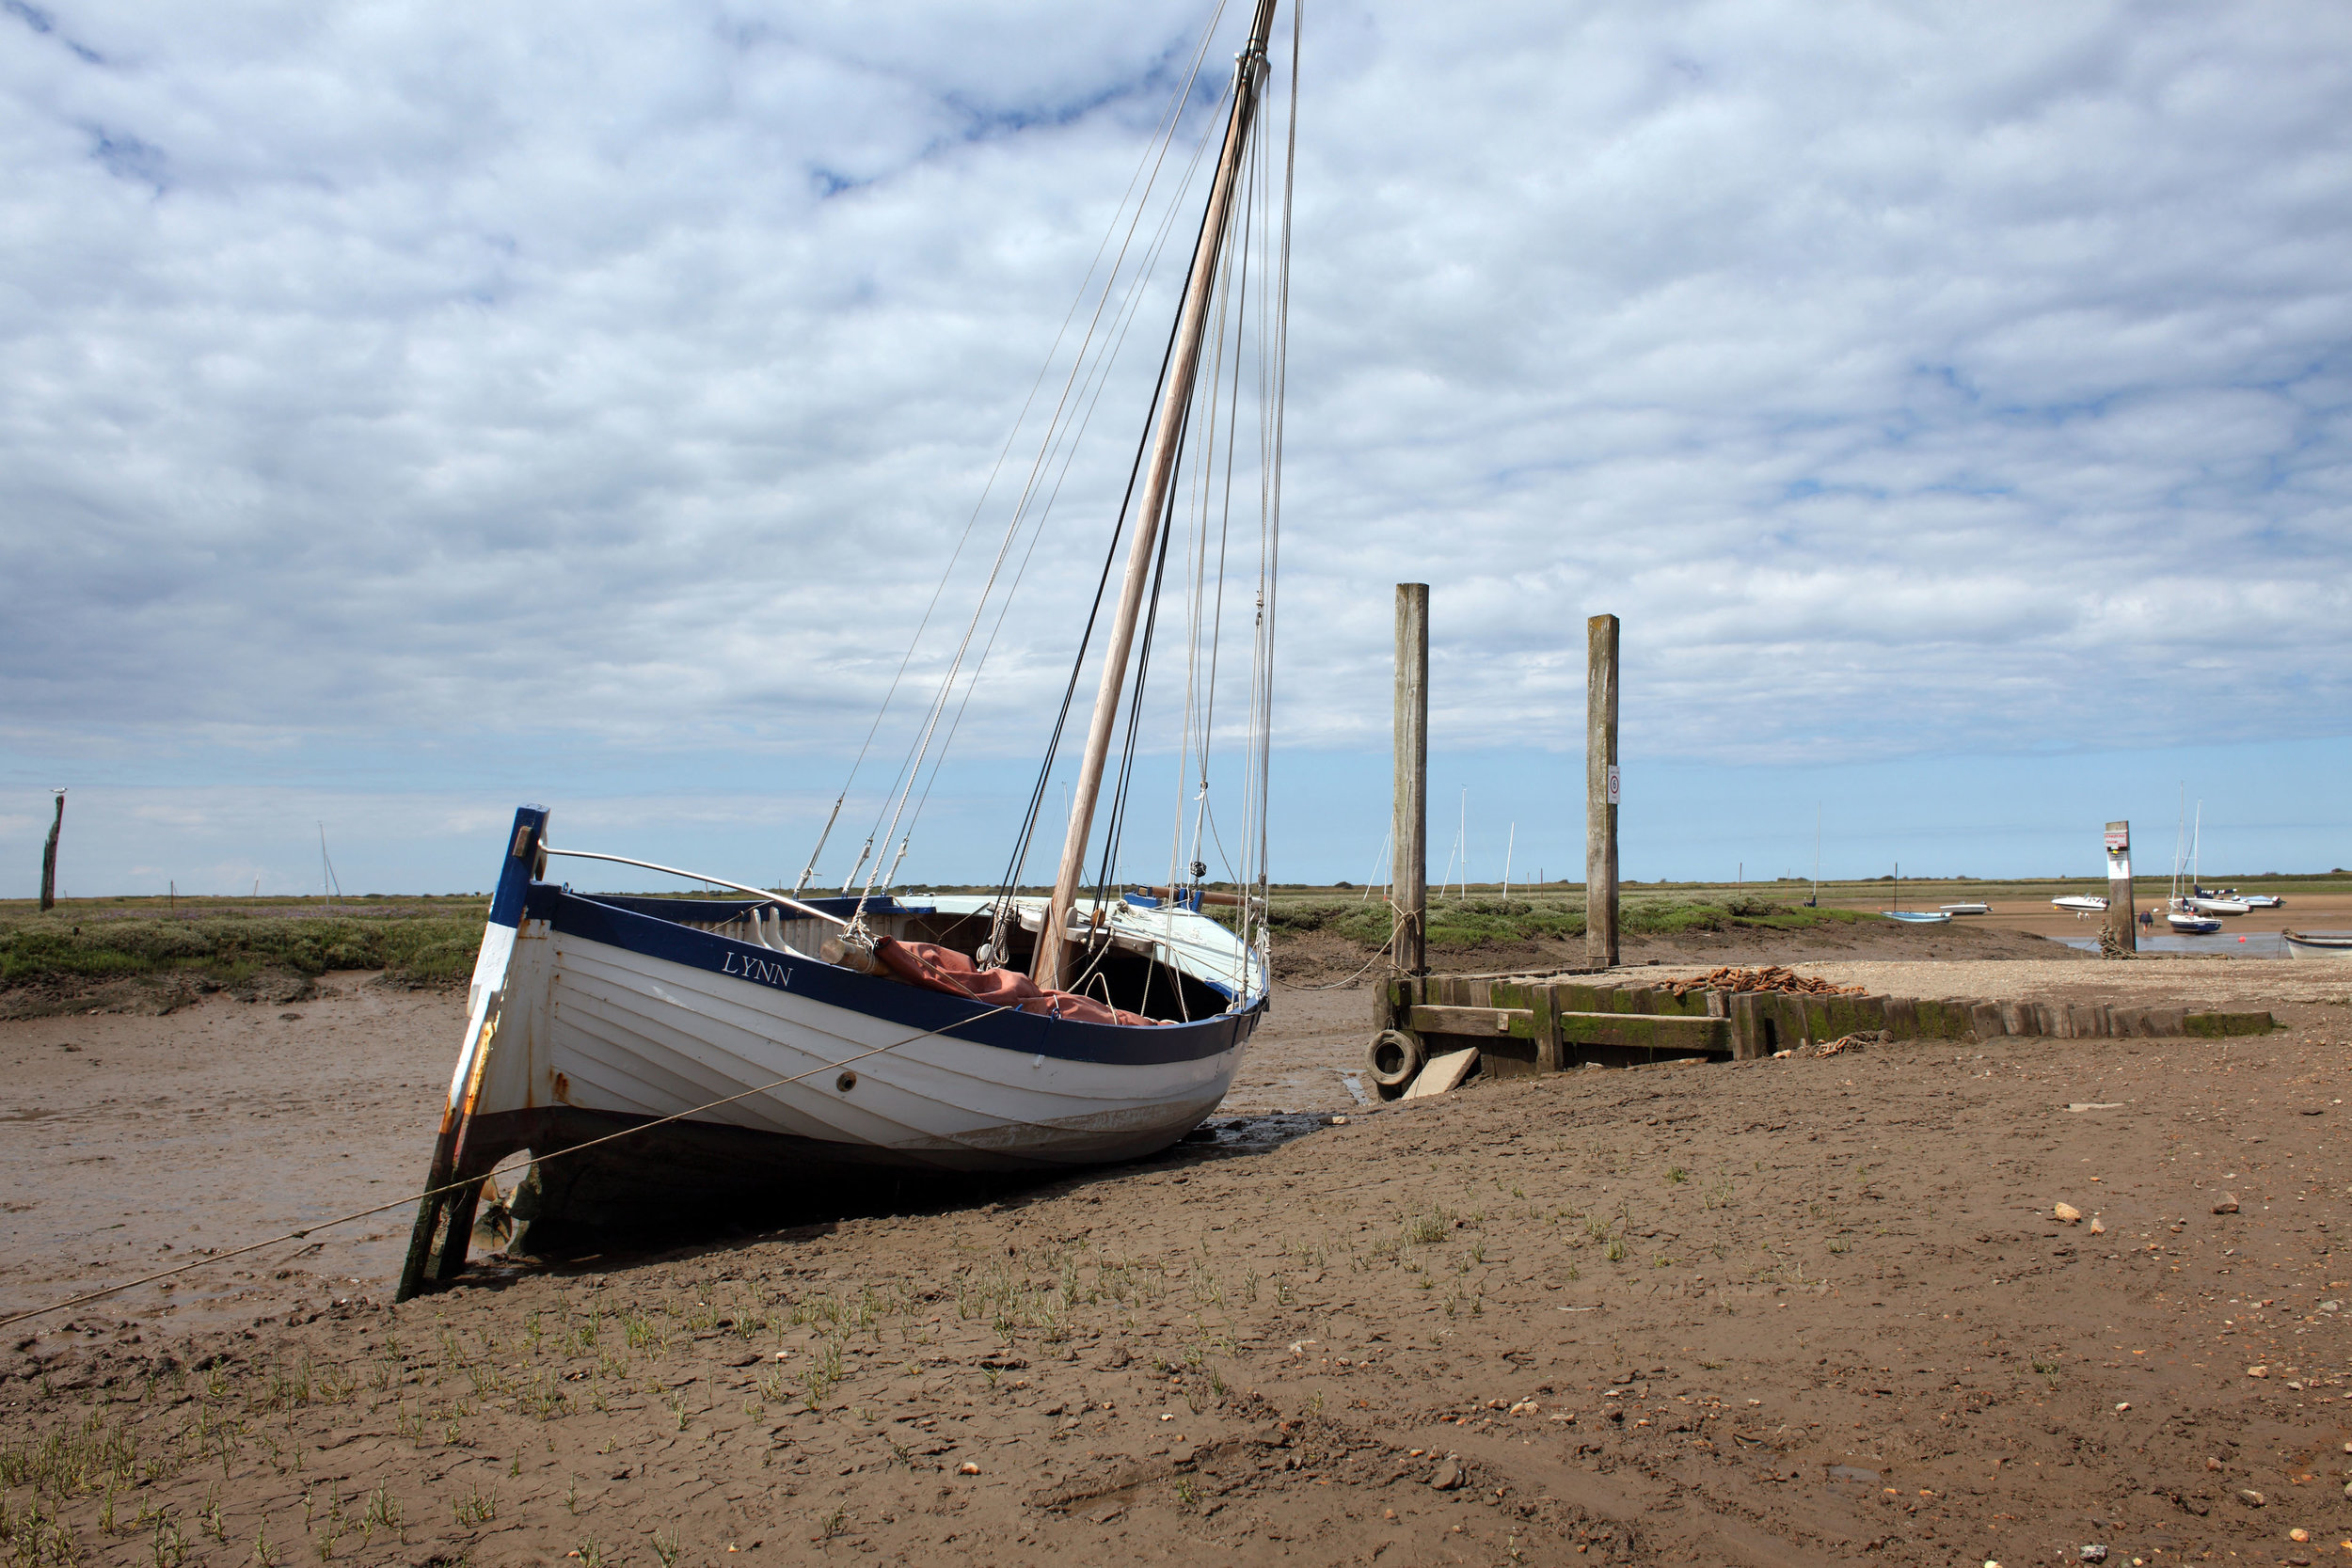 thornham_hunstanton_009(compressed).jpg